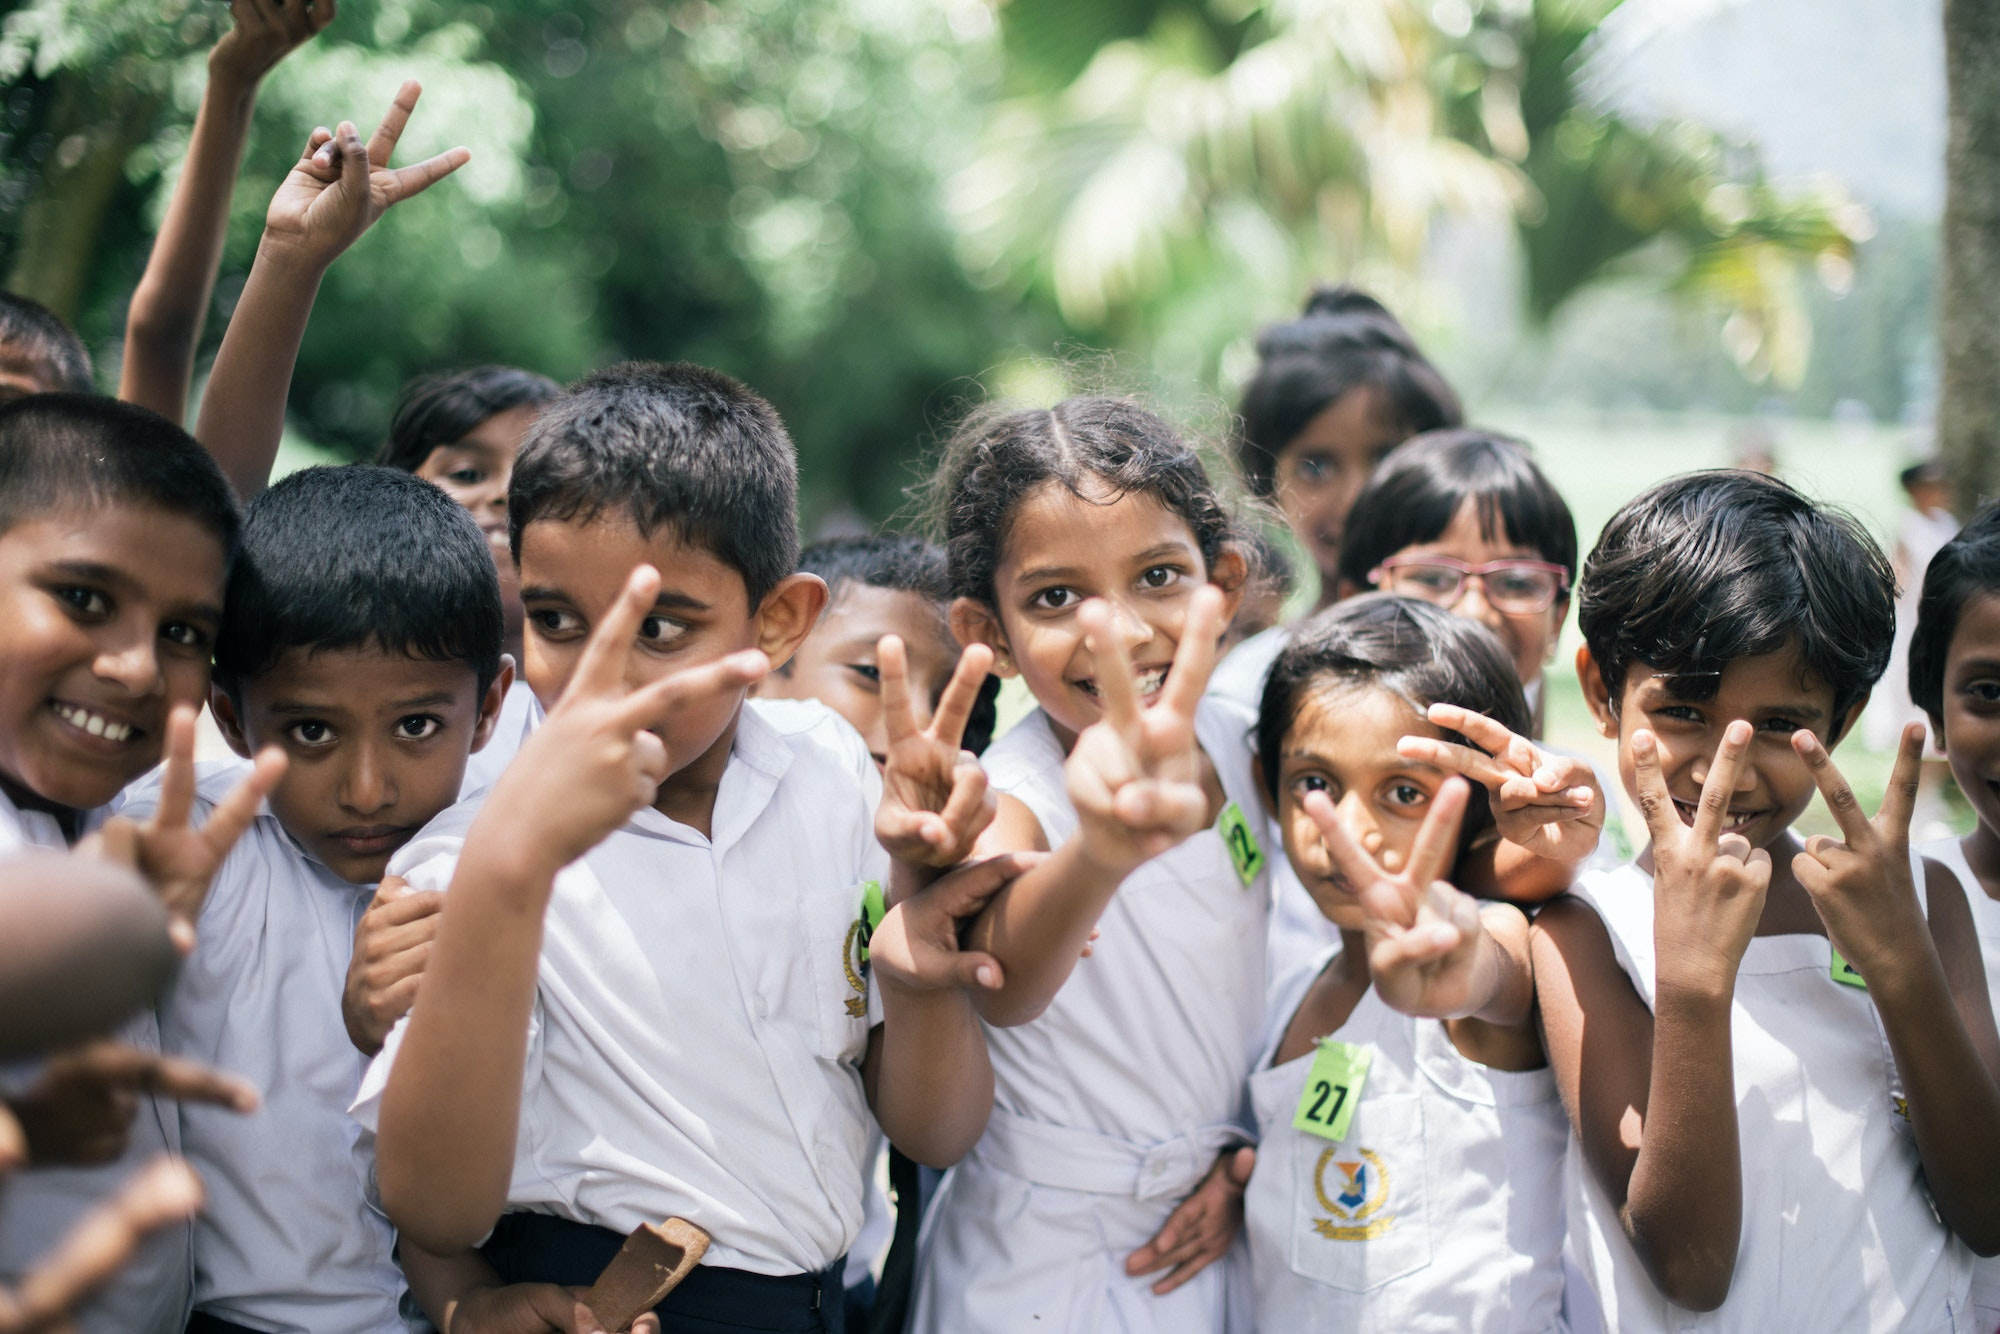 """""""These children in Kandy were so welcoming. They posed for this shot after we played a game of tag,"""" Rudd says."""